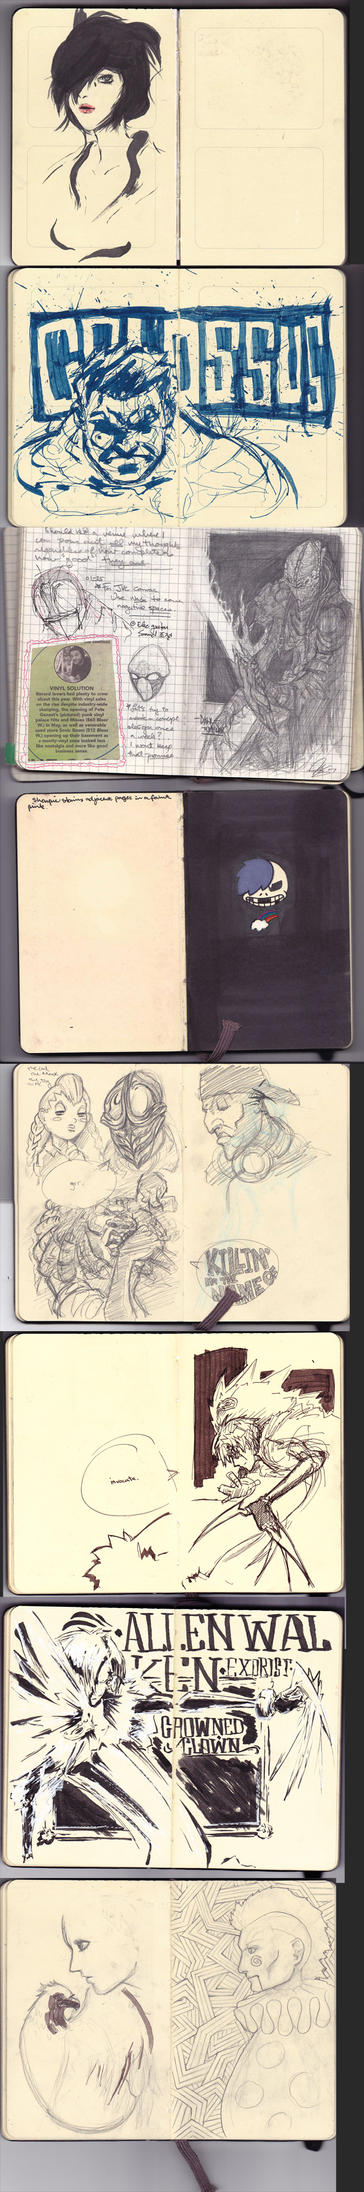 Various Moleskine Pages by aestheticartist